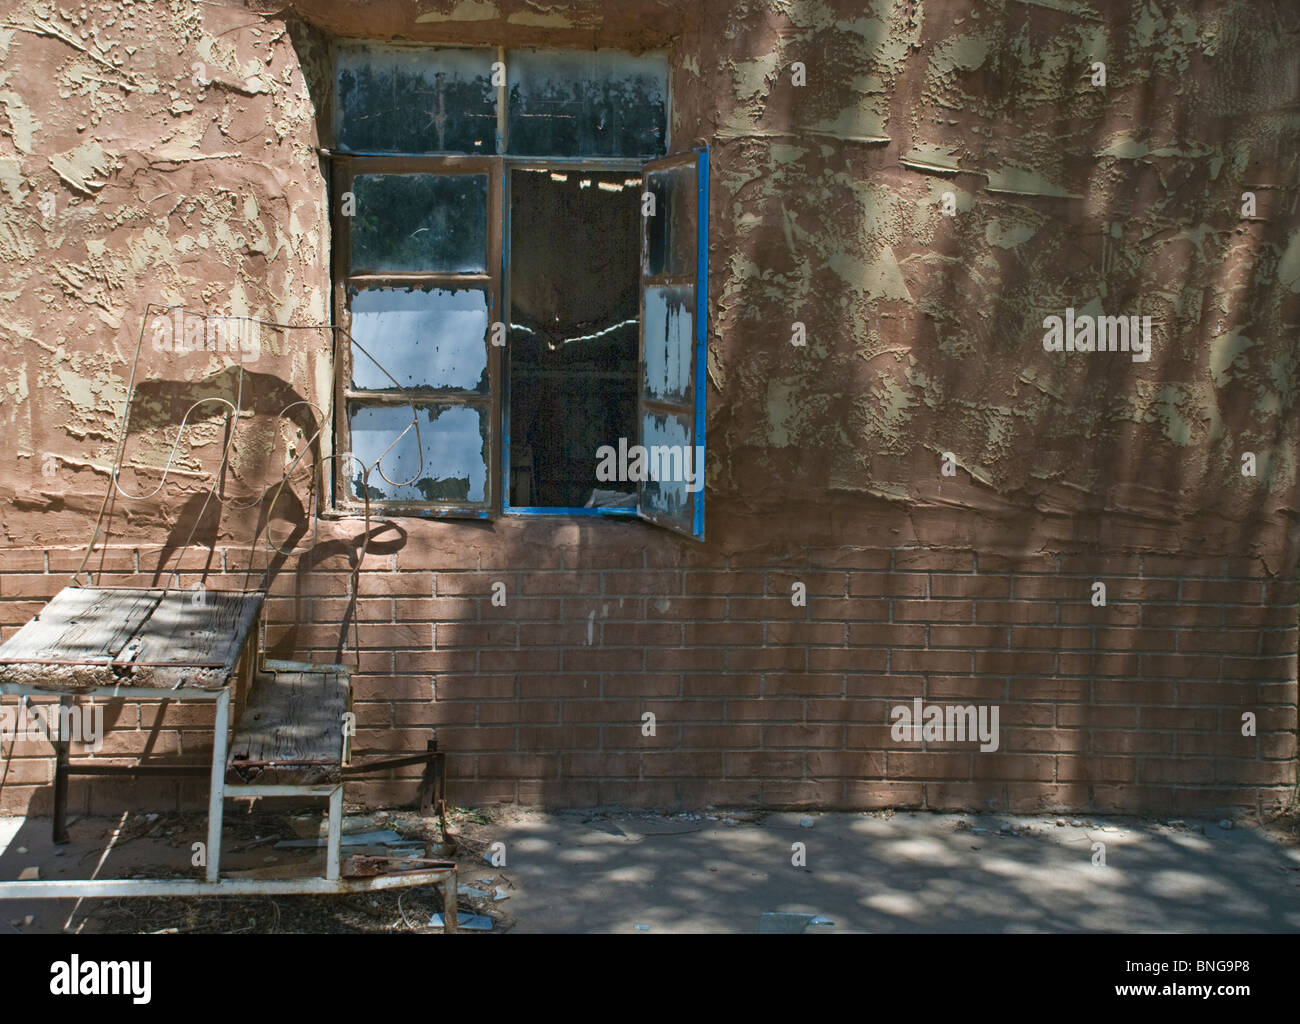 Junk left outside an abandoned building surprisingly provides a peaceful setting. - Stock Image